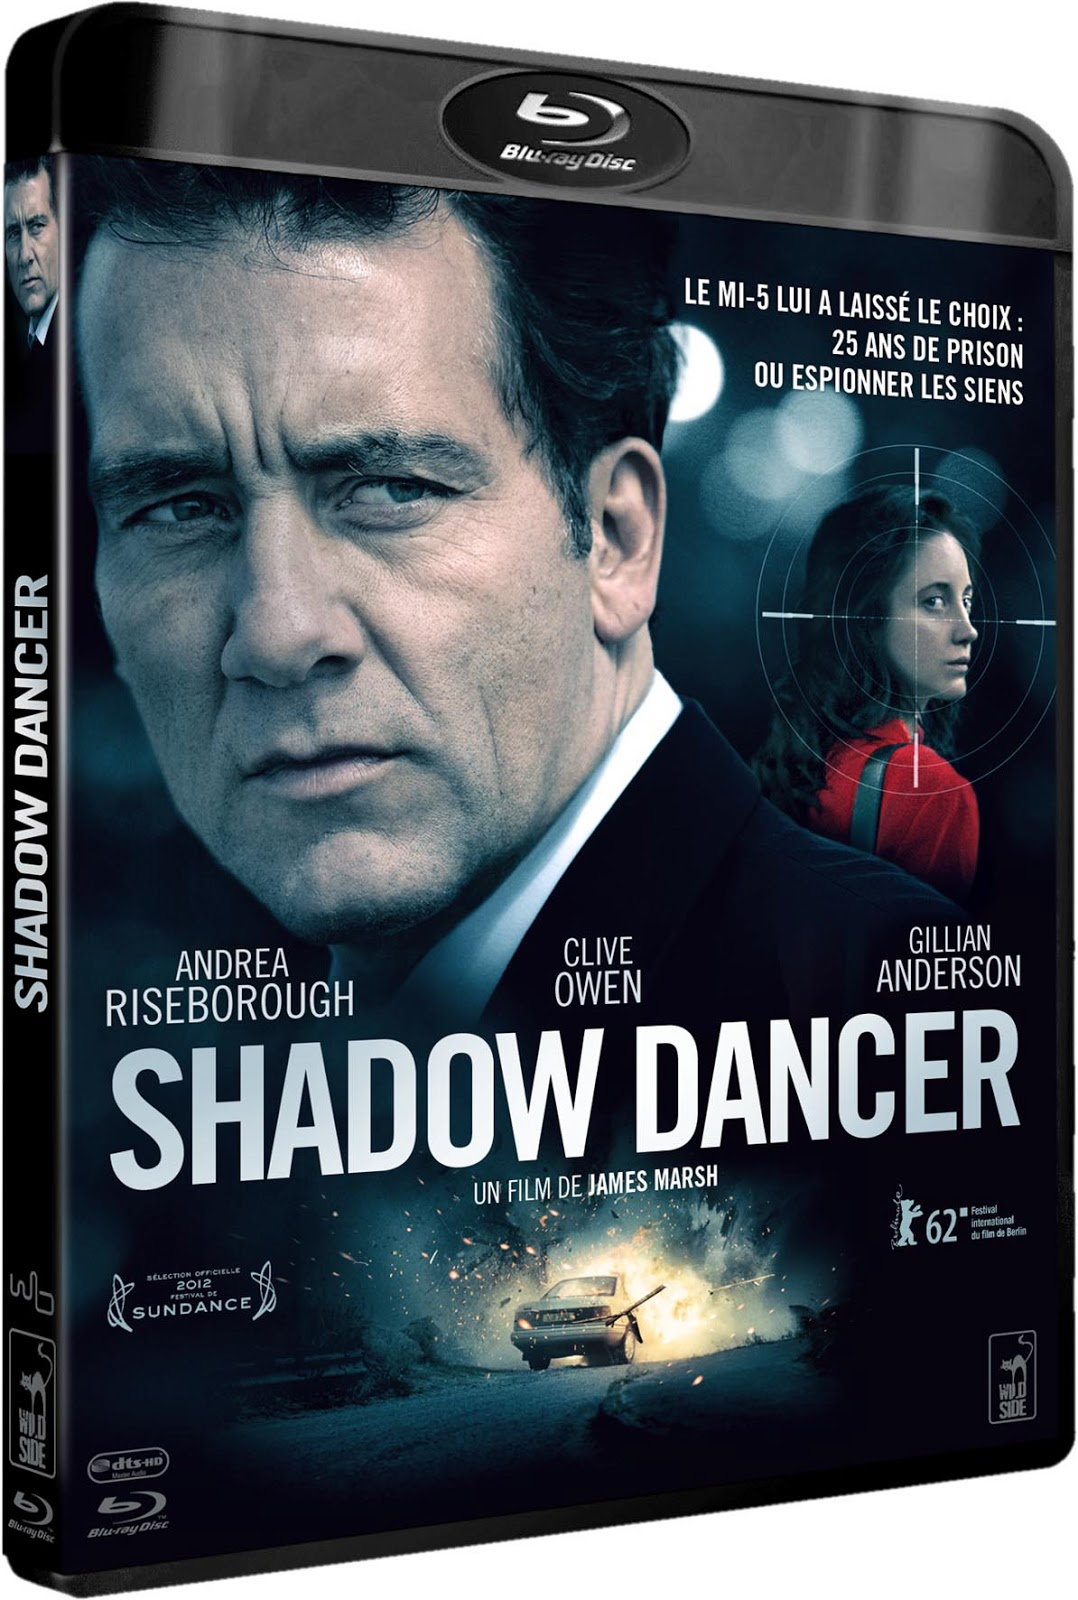 Shadow Dancer (2012) [MULTi-TRUEFRENCH] [Blu-Ray 720p + 1080p]